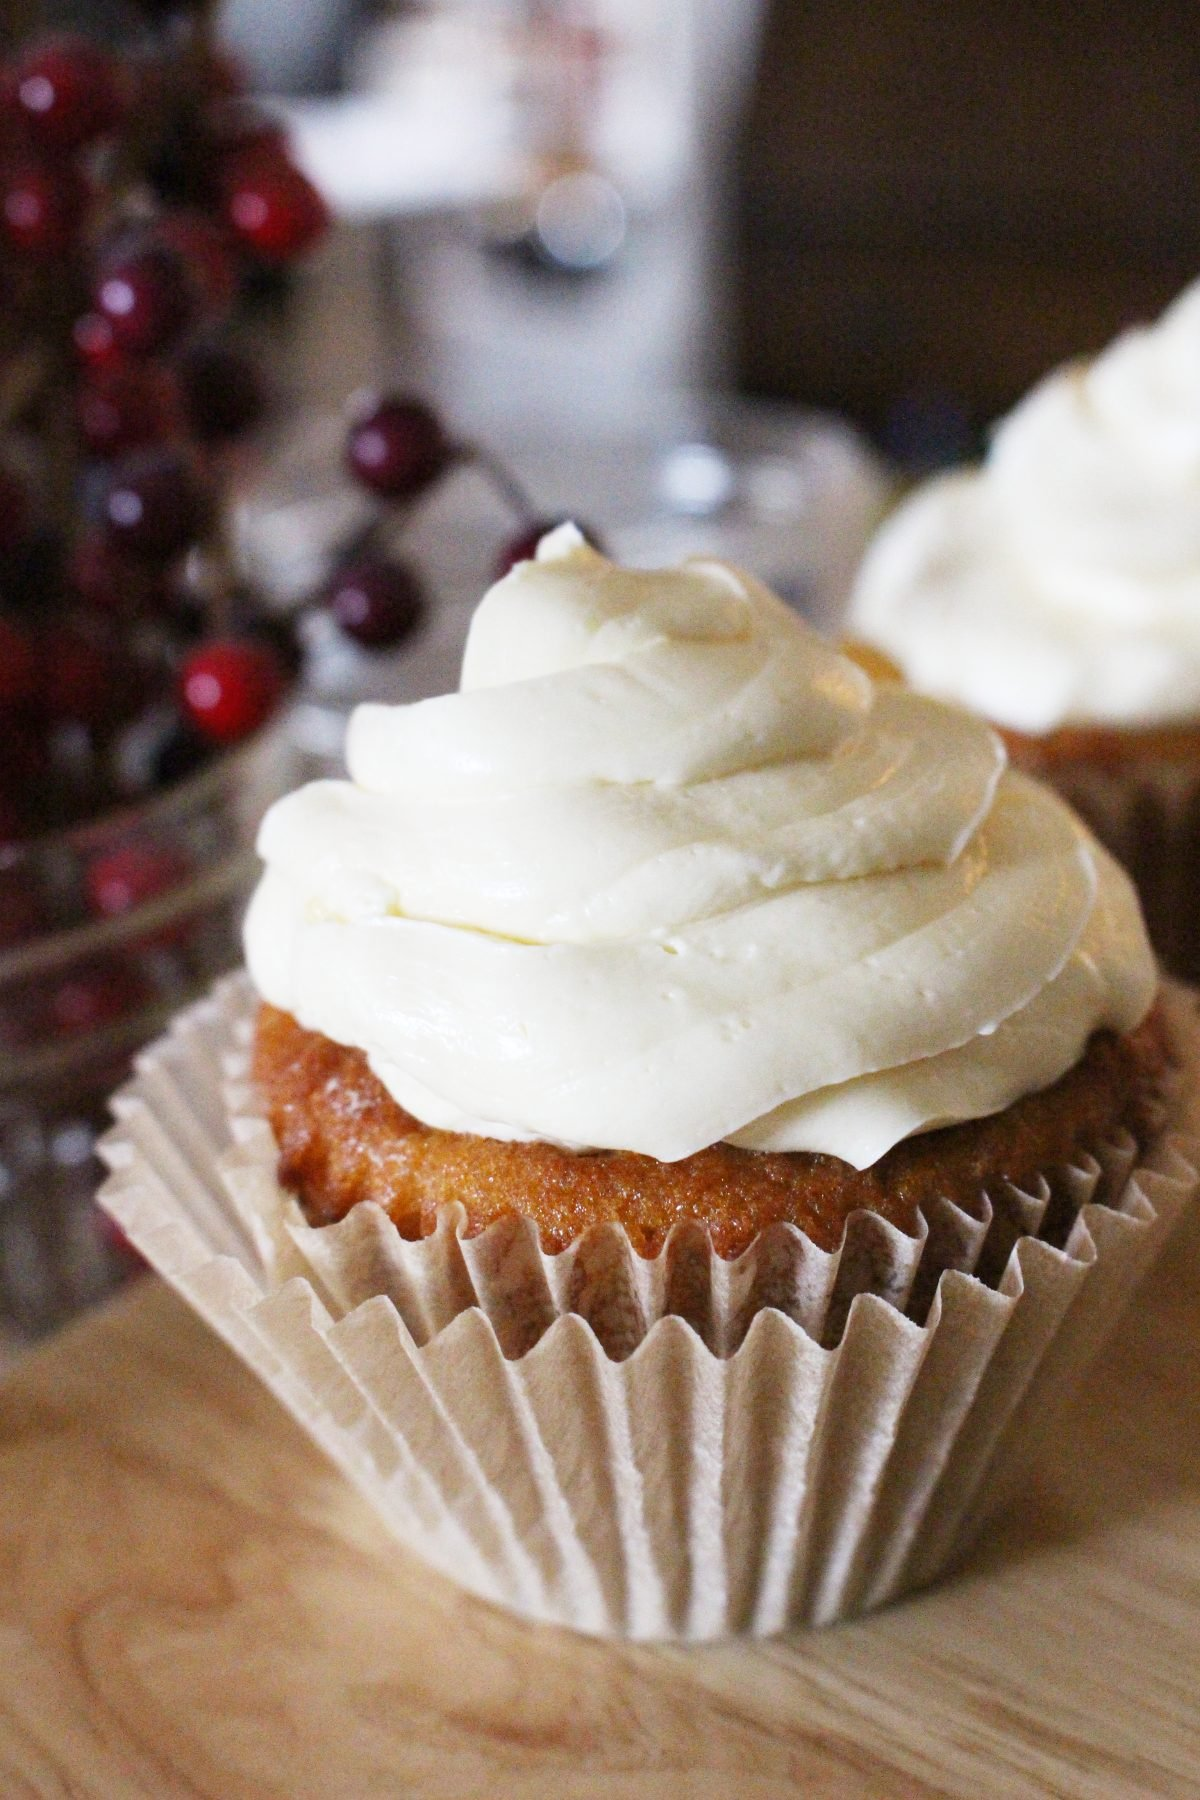 Paleo GAPS coconut flour vanilla cupcakes with buttercream icing in a cream cupcake wrapper